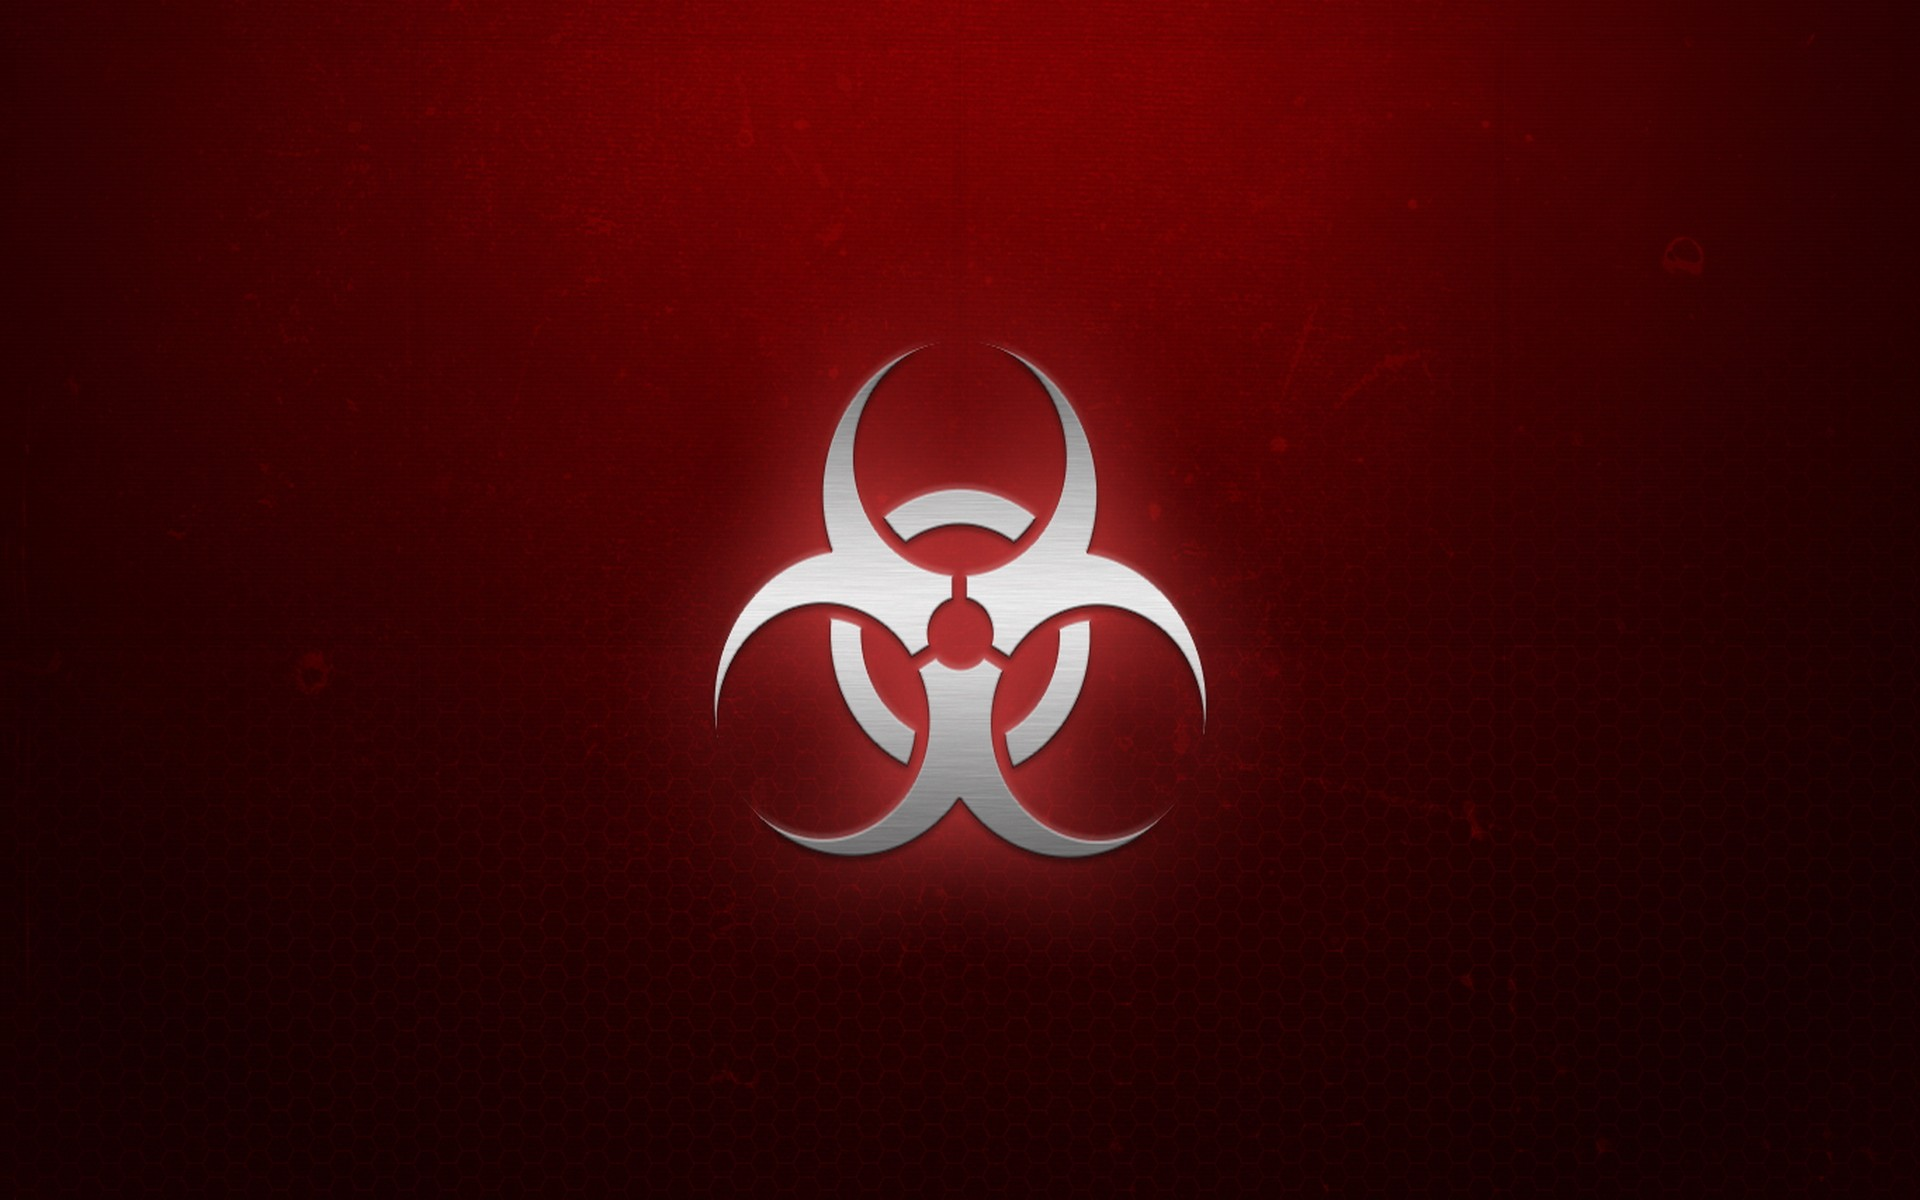 biohazard wallpaper ·① download free beautiful wallpapers for